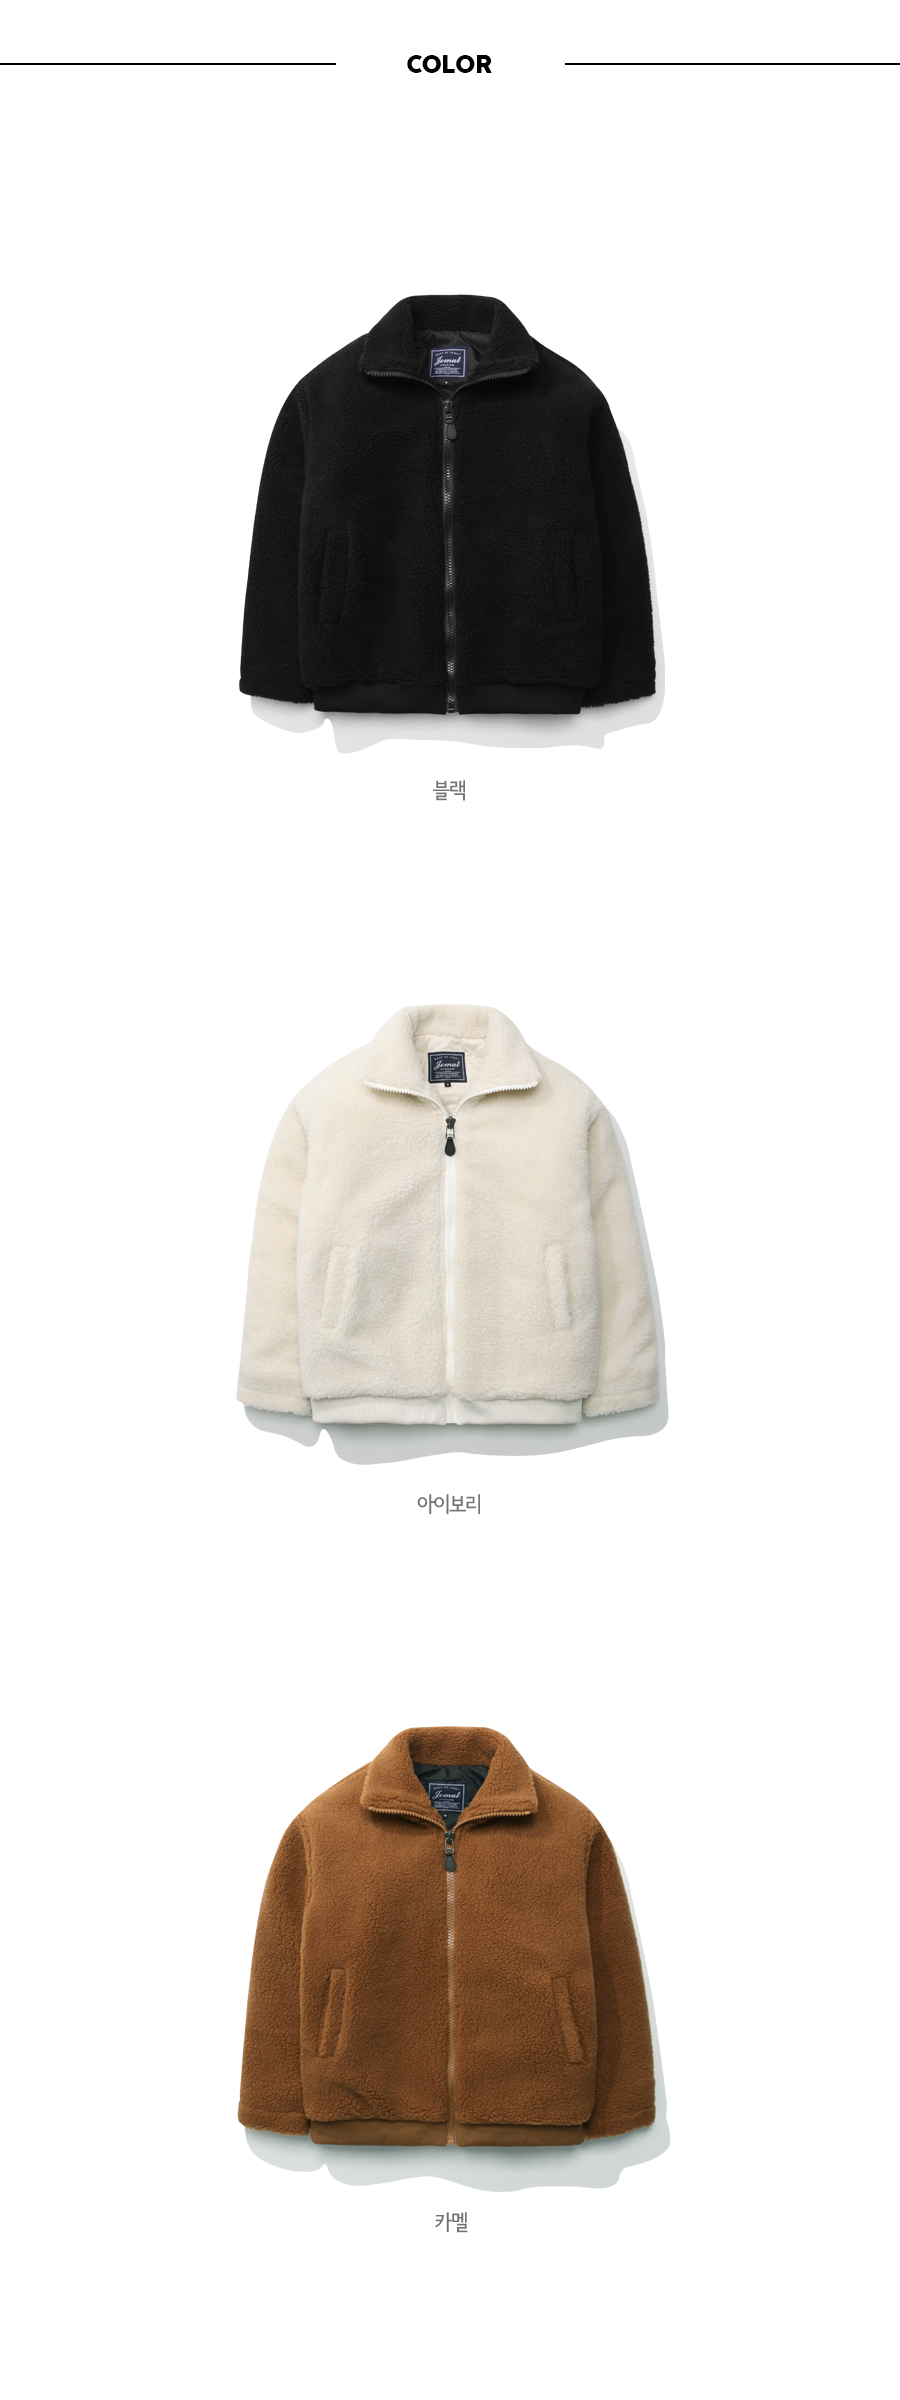 20181015_warms_wool_jacket_color_kj.jpg